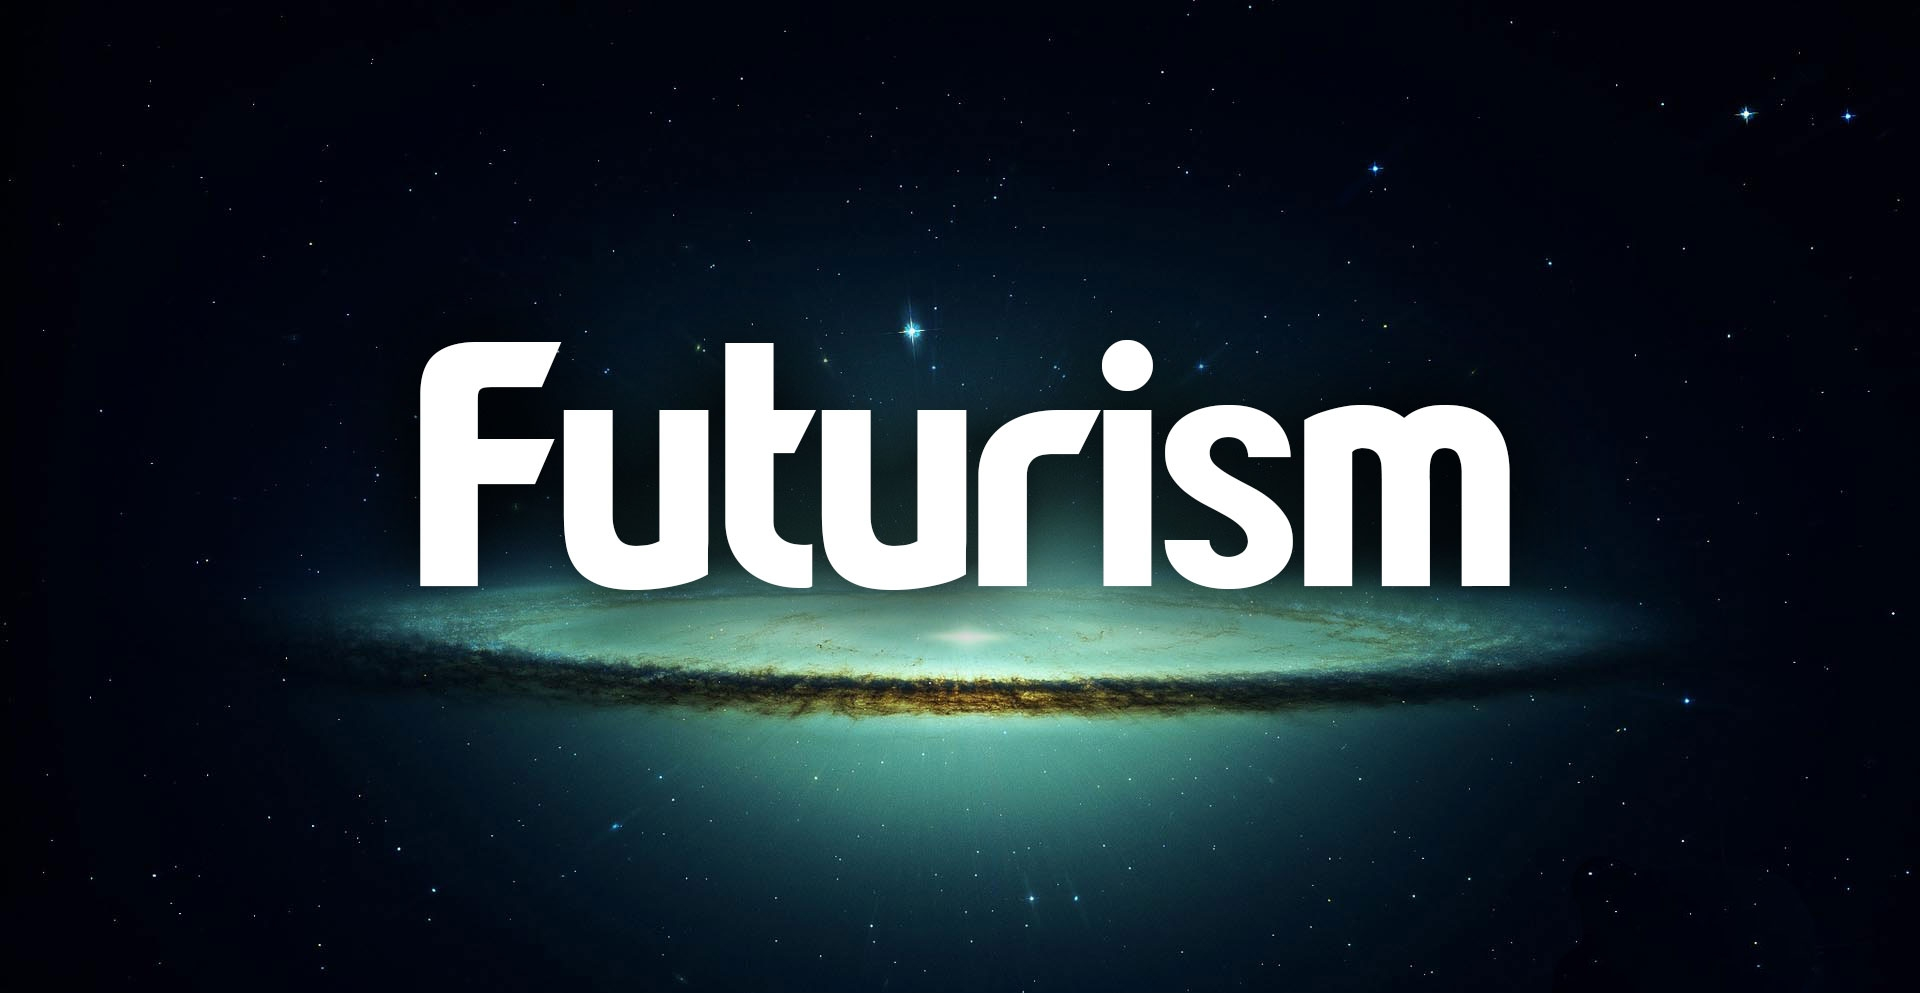 Futurism: A media company based out of New York City, and partnered with Singularity University as of 2019. Our mission? To bring you the world, the news, products, and narratives of tomorrow, today.